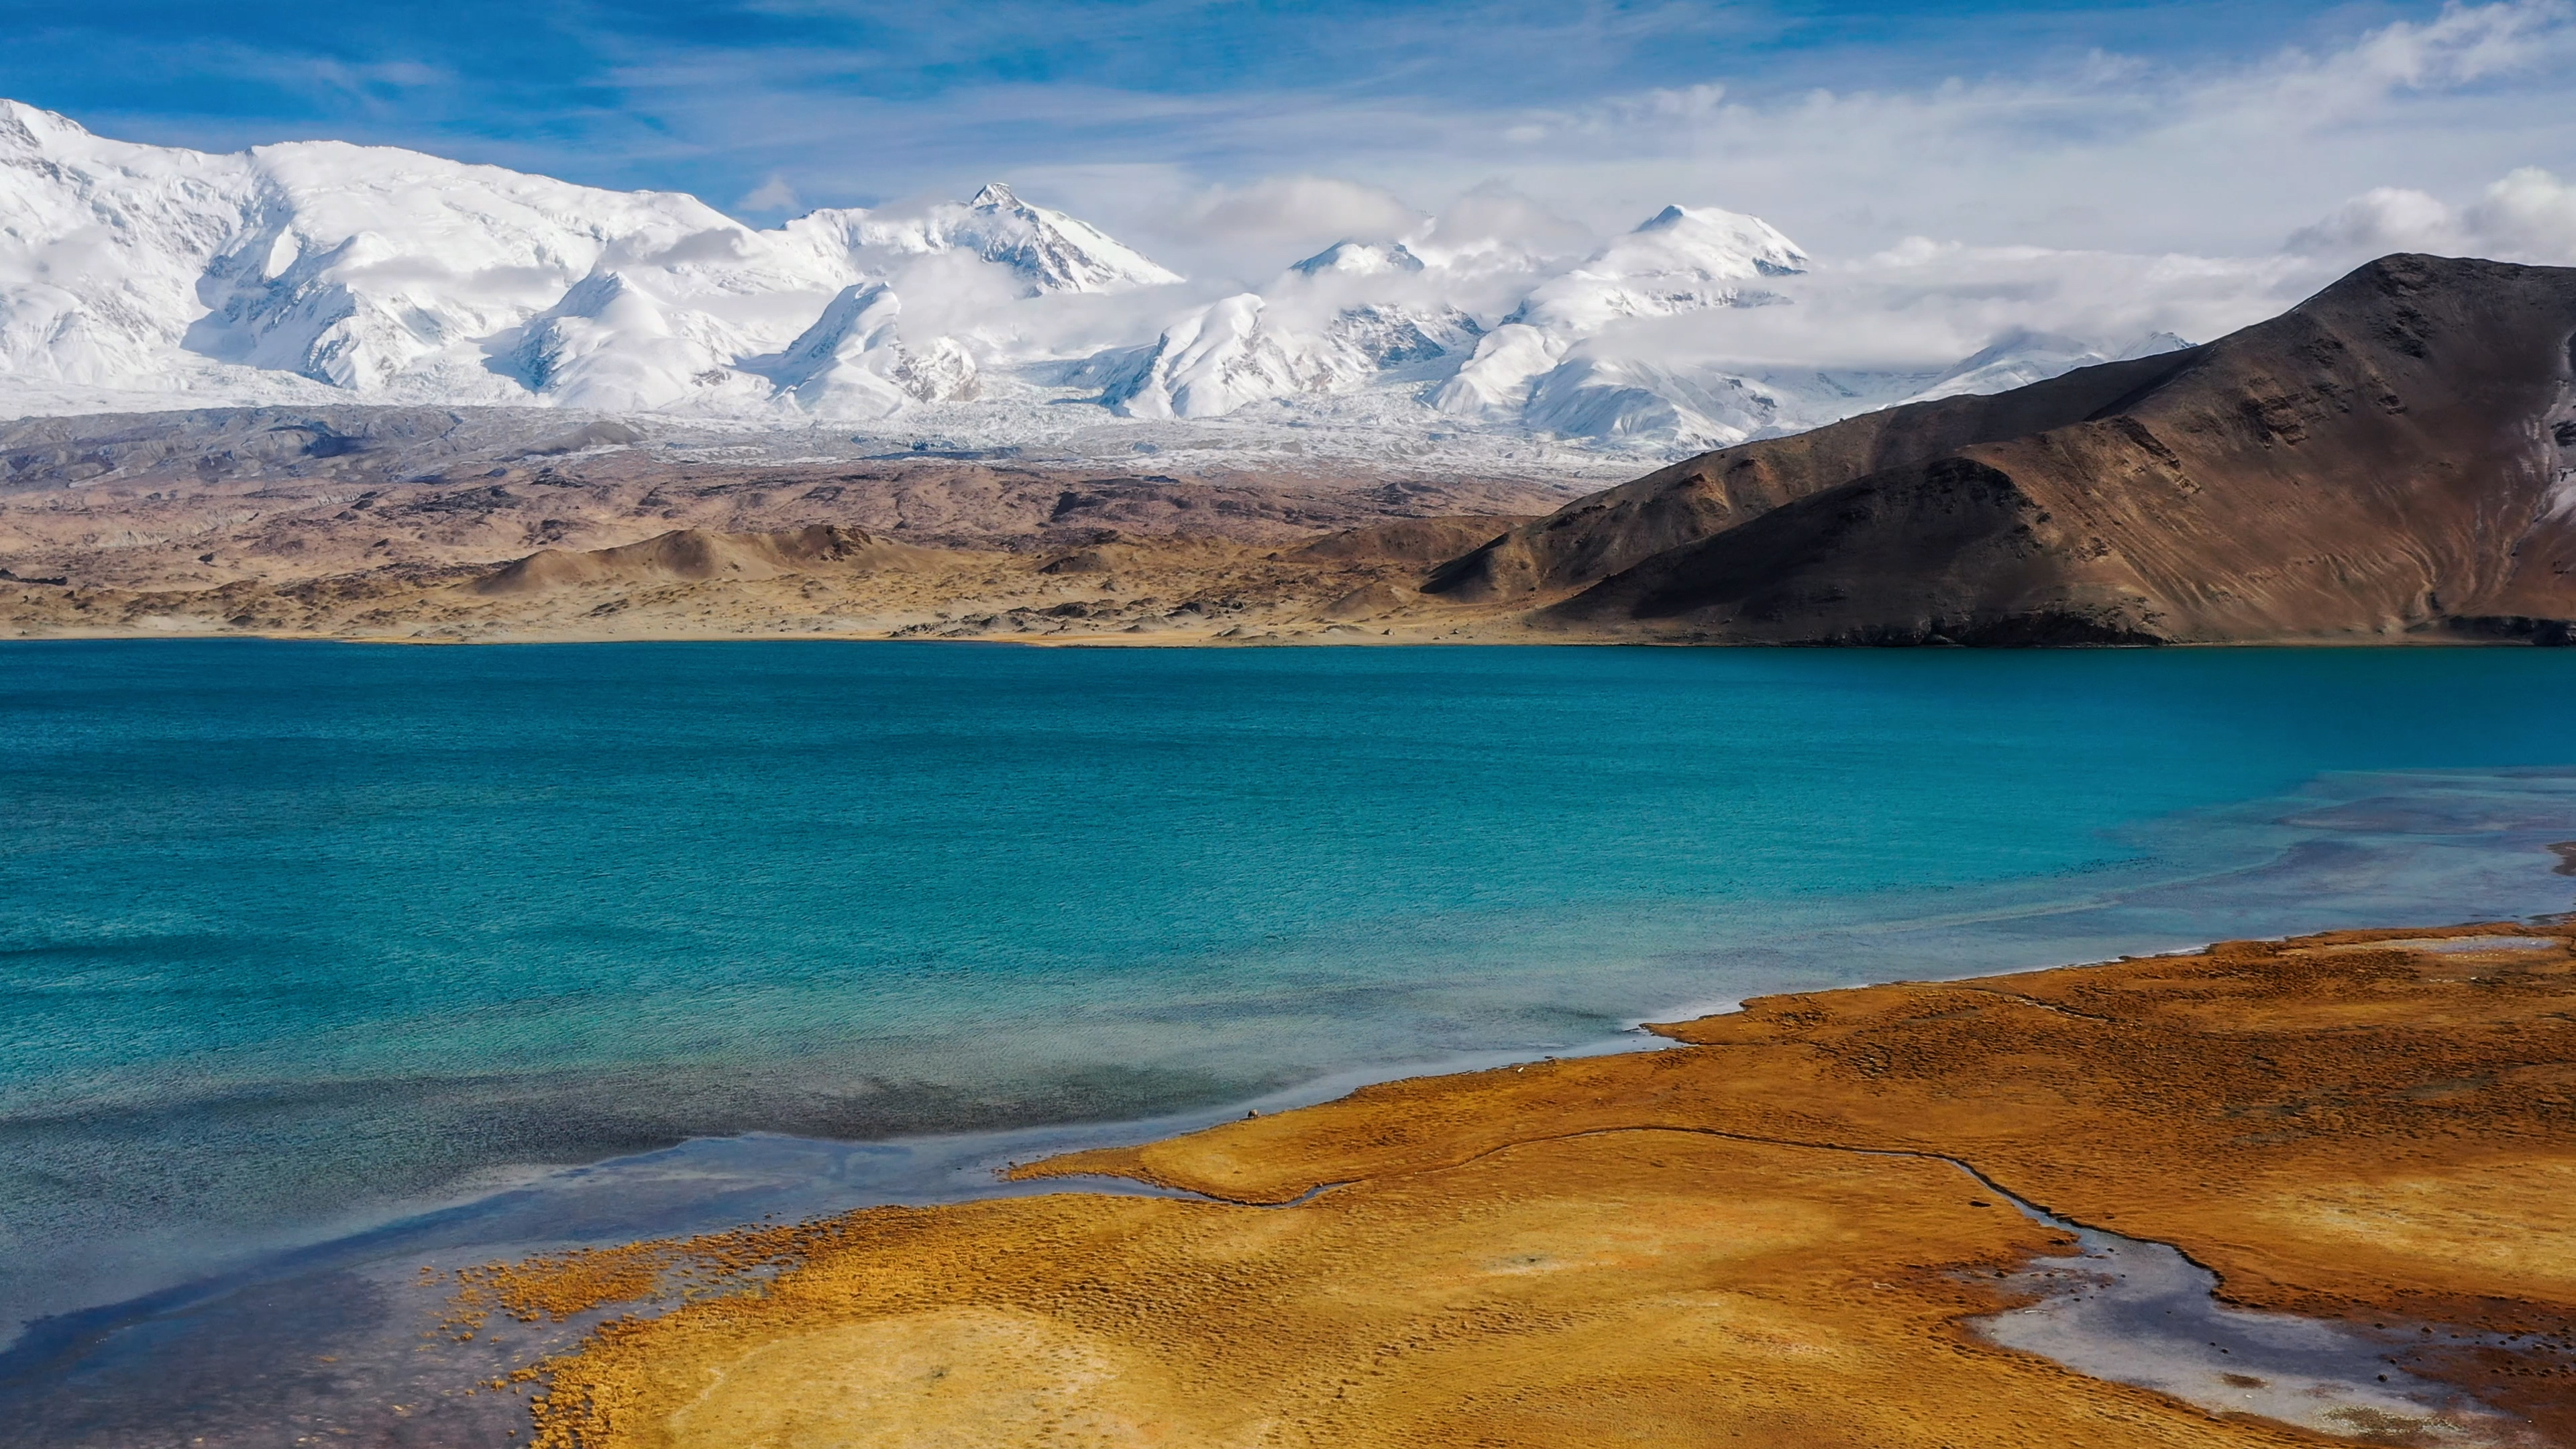 The sublime beauty of Xinjiang